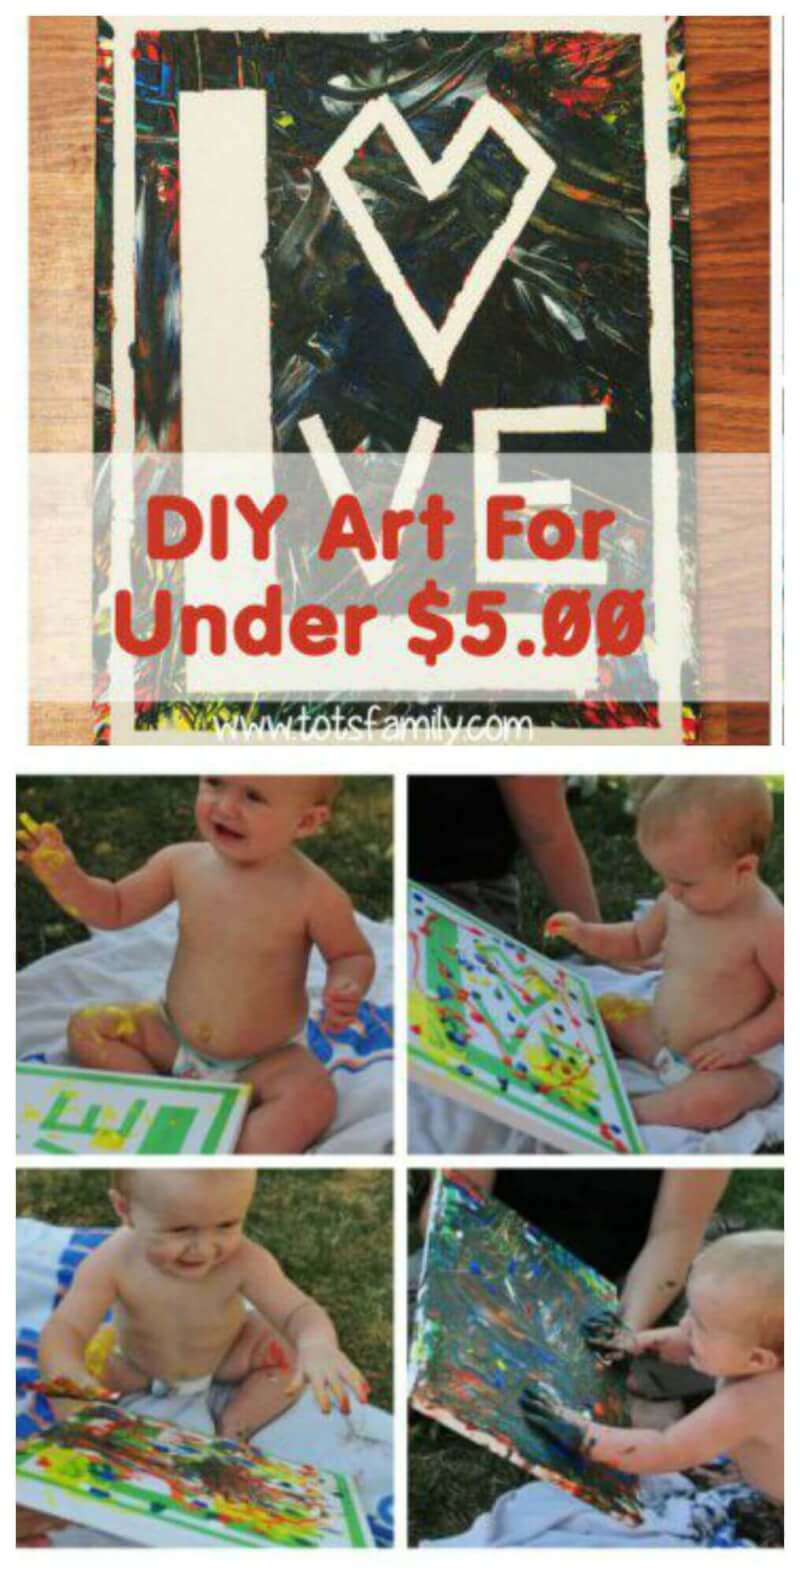 TOTS Family, Parenting, Kids, Food, Crafts, DIY and Travel DIY-Art-For-Under-5-Baby-edition1 DIY Art For Under $5: Baby Edition Home Kids  toddler how to diy art diy